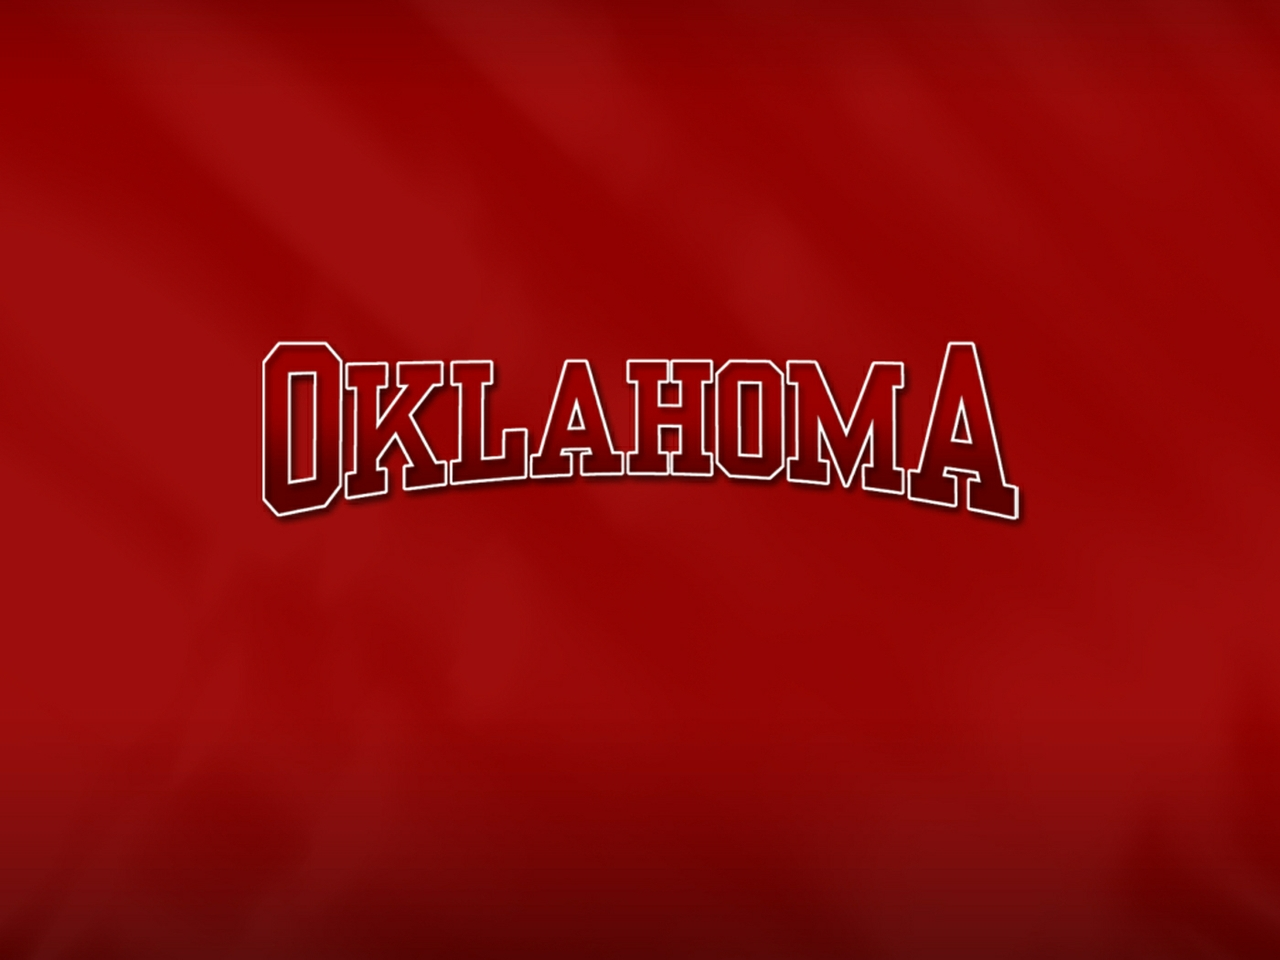 1280x960 Oklahoma Sooners 3 Wallpaper Download 1280x960